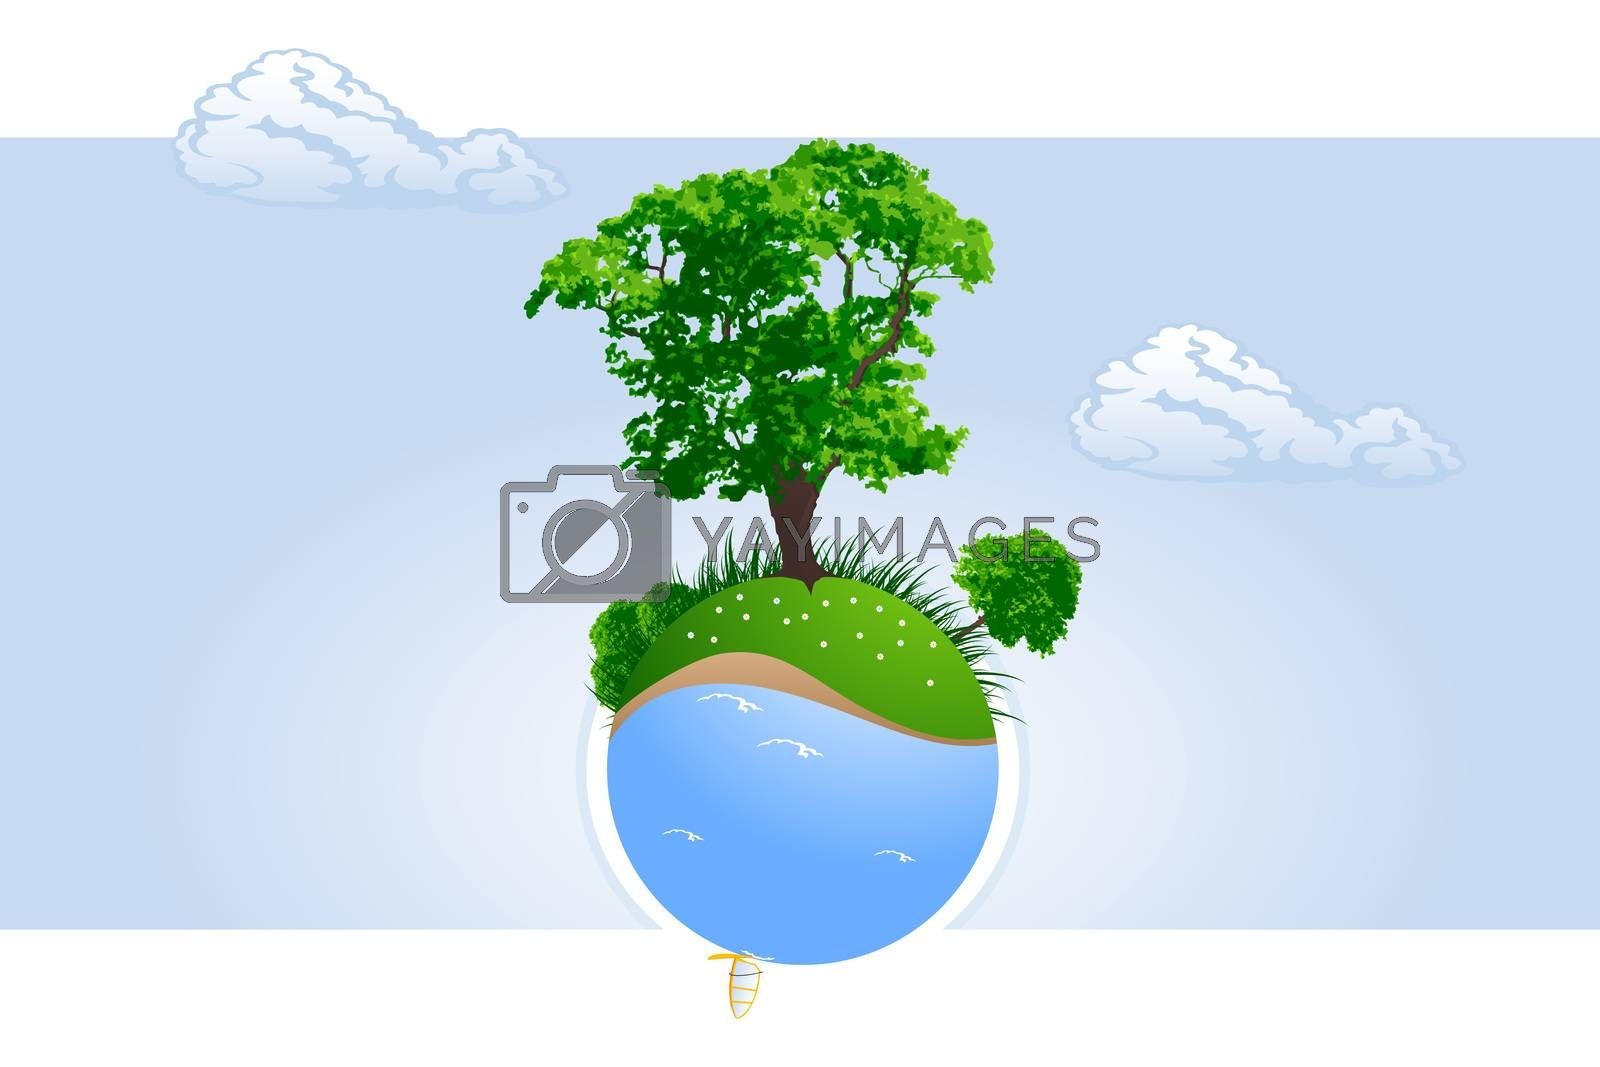 Green planet by WaD